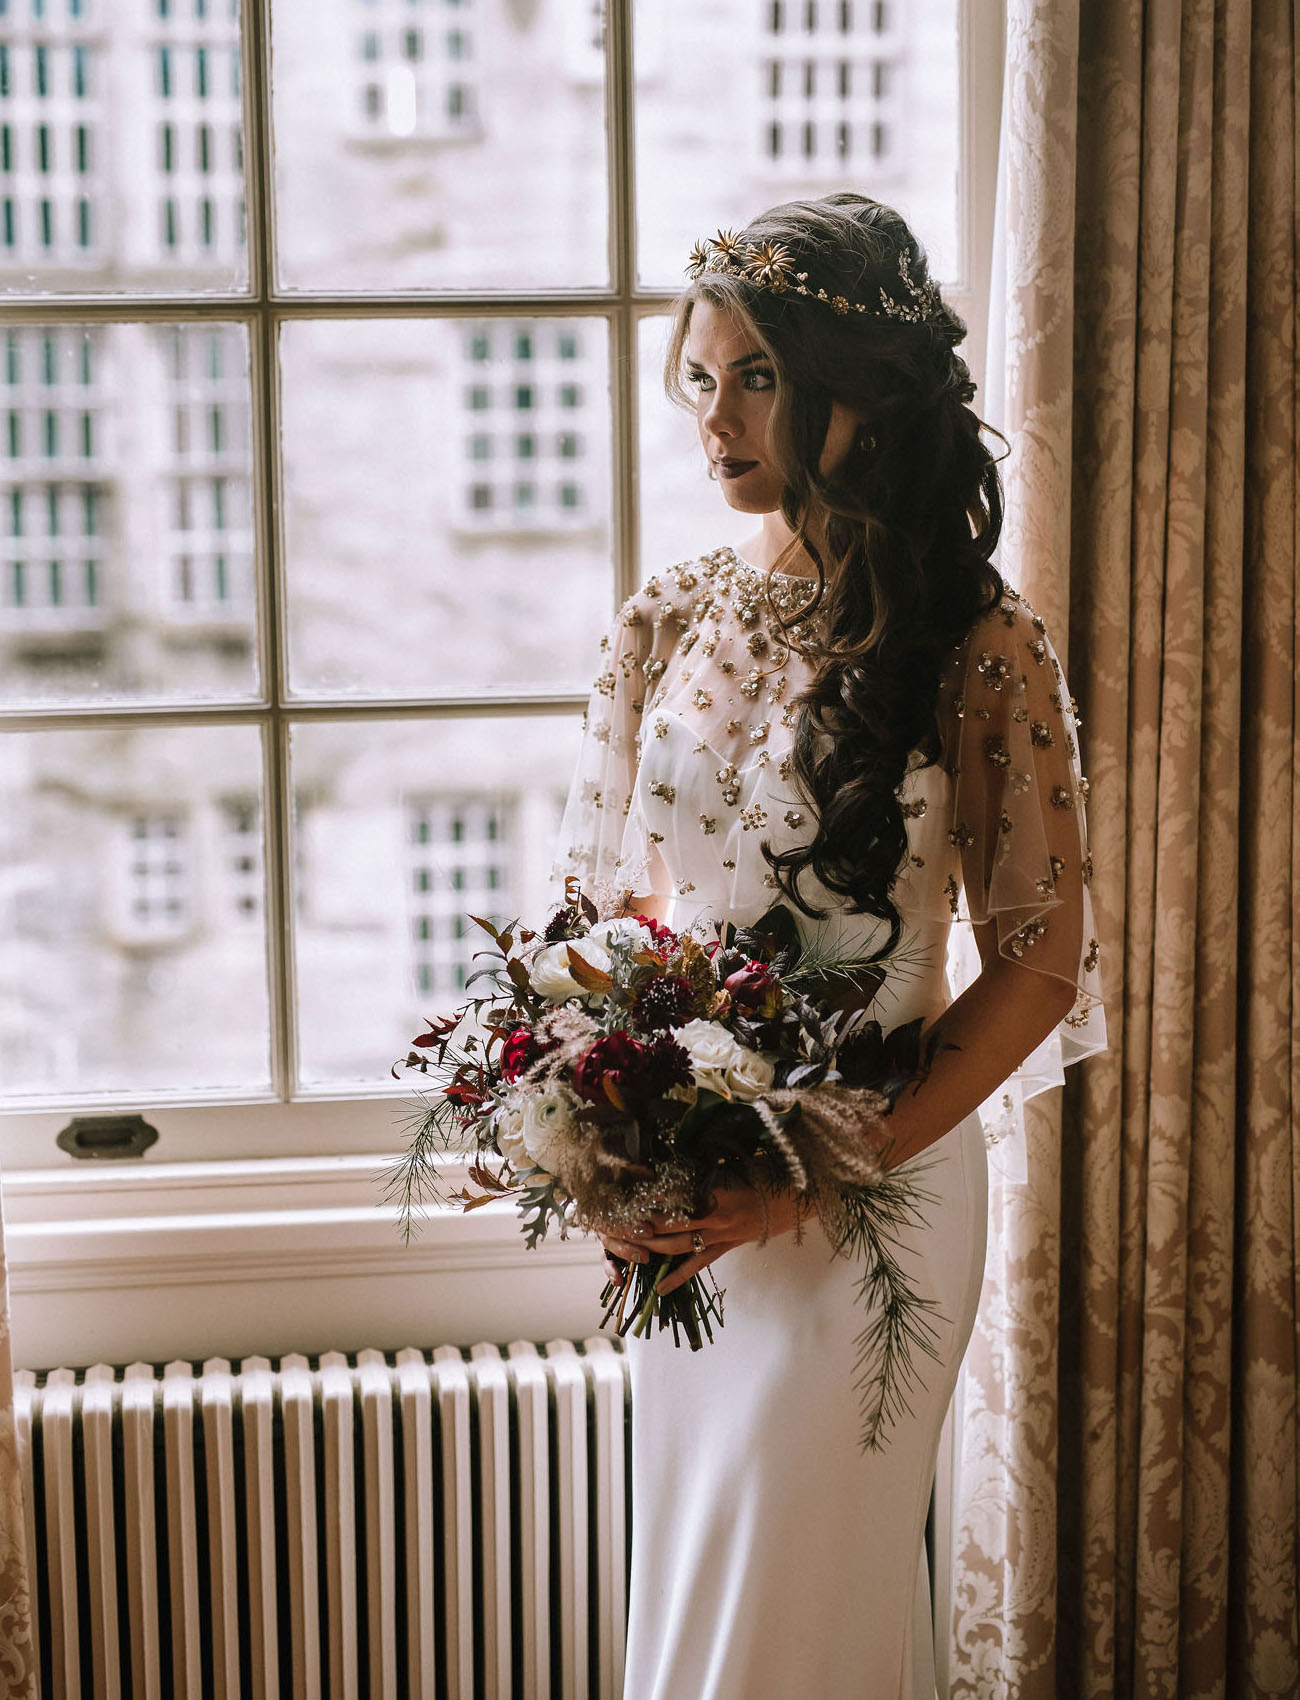 The bride was wearing a fitting modern wedding gown with an embellished shawl, long wavy hair and a dark lip